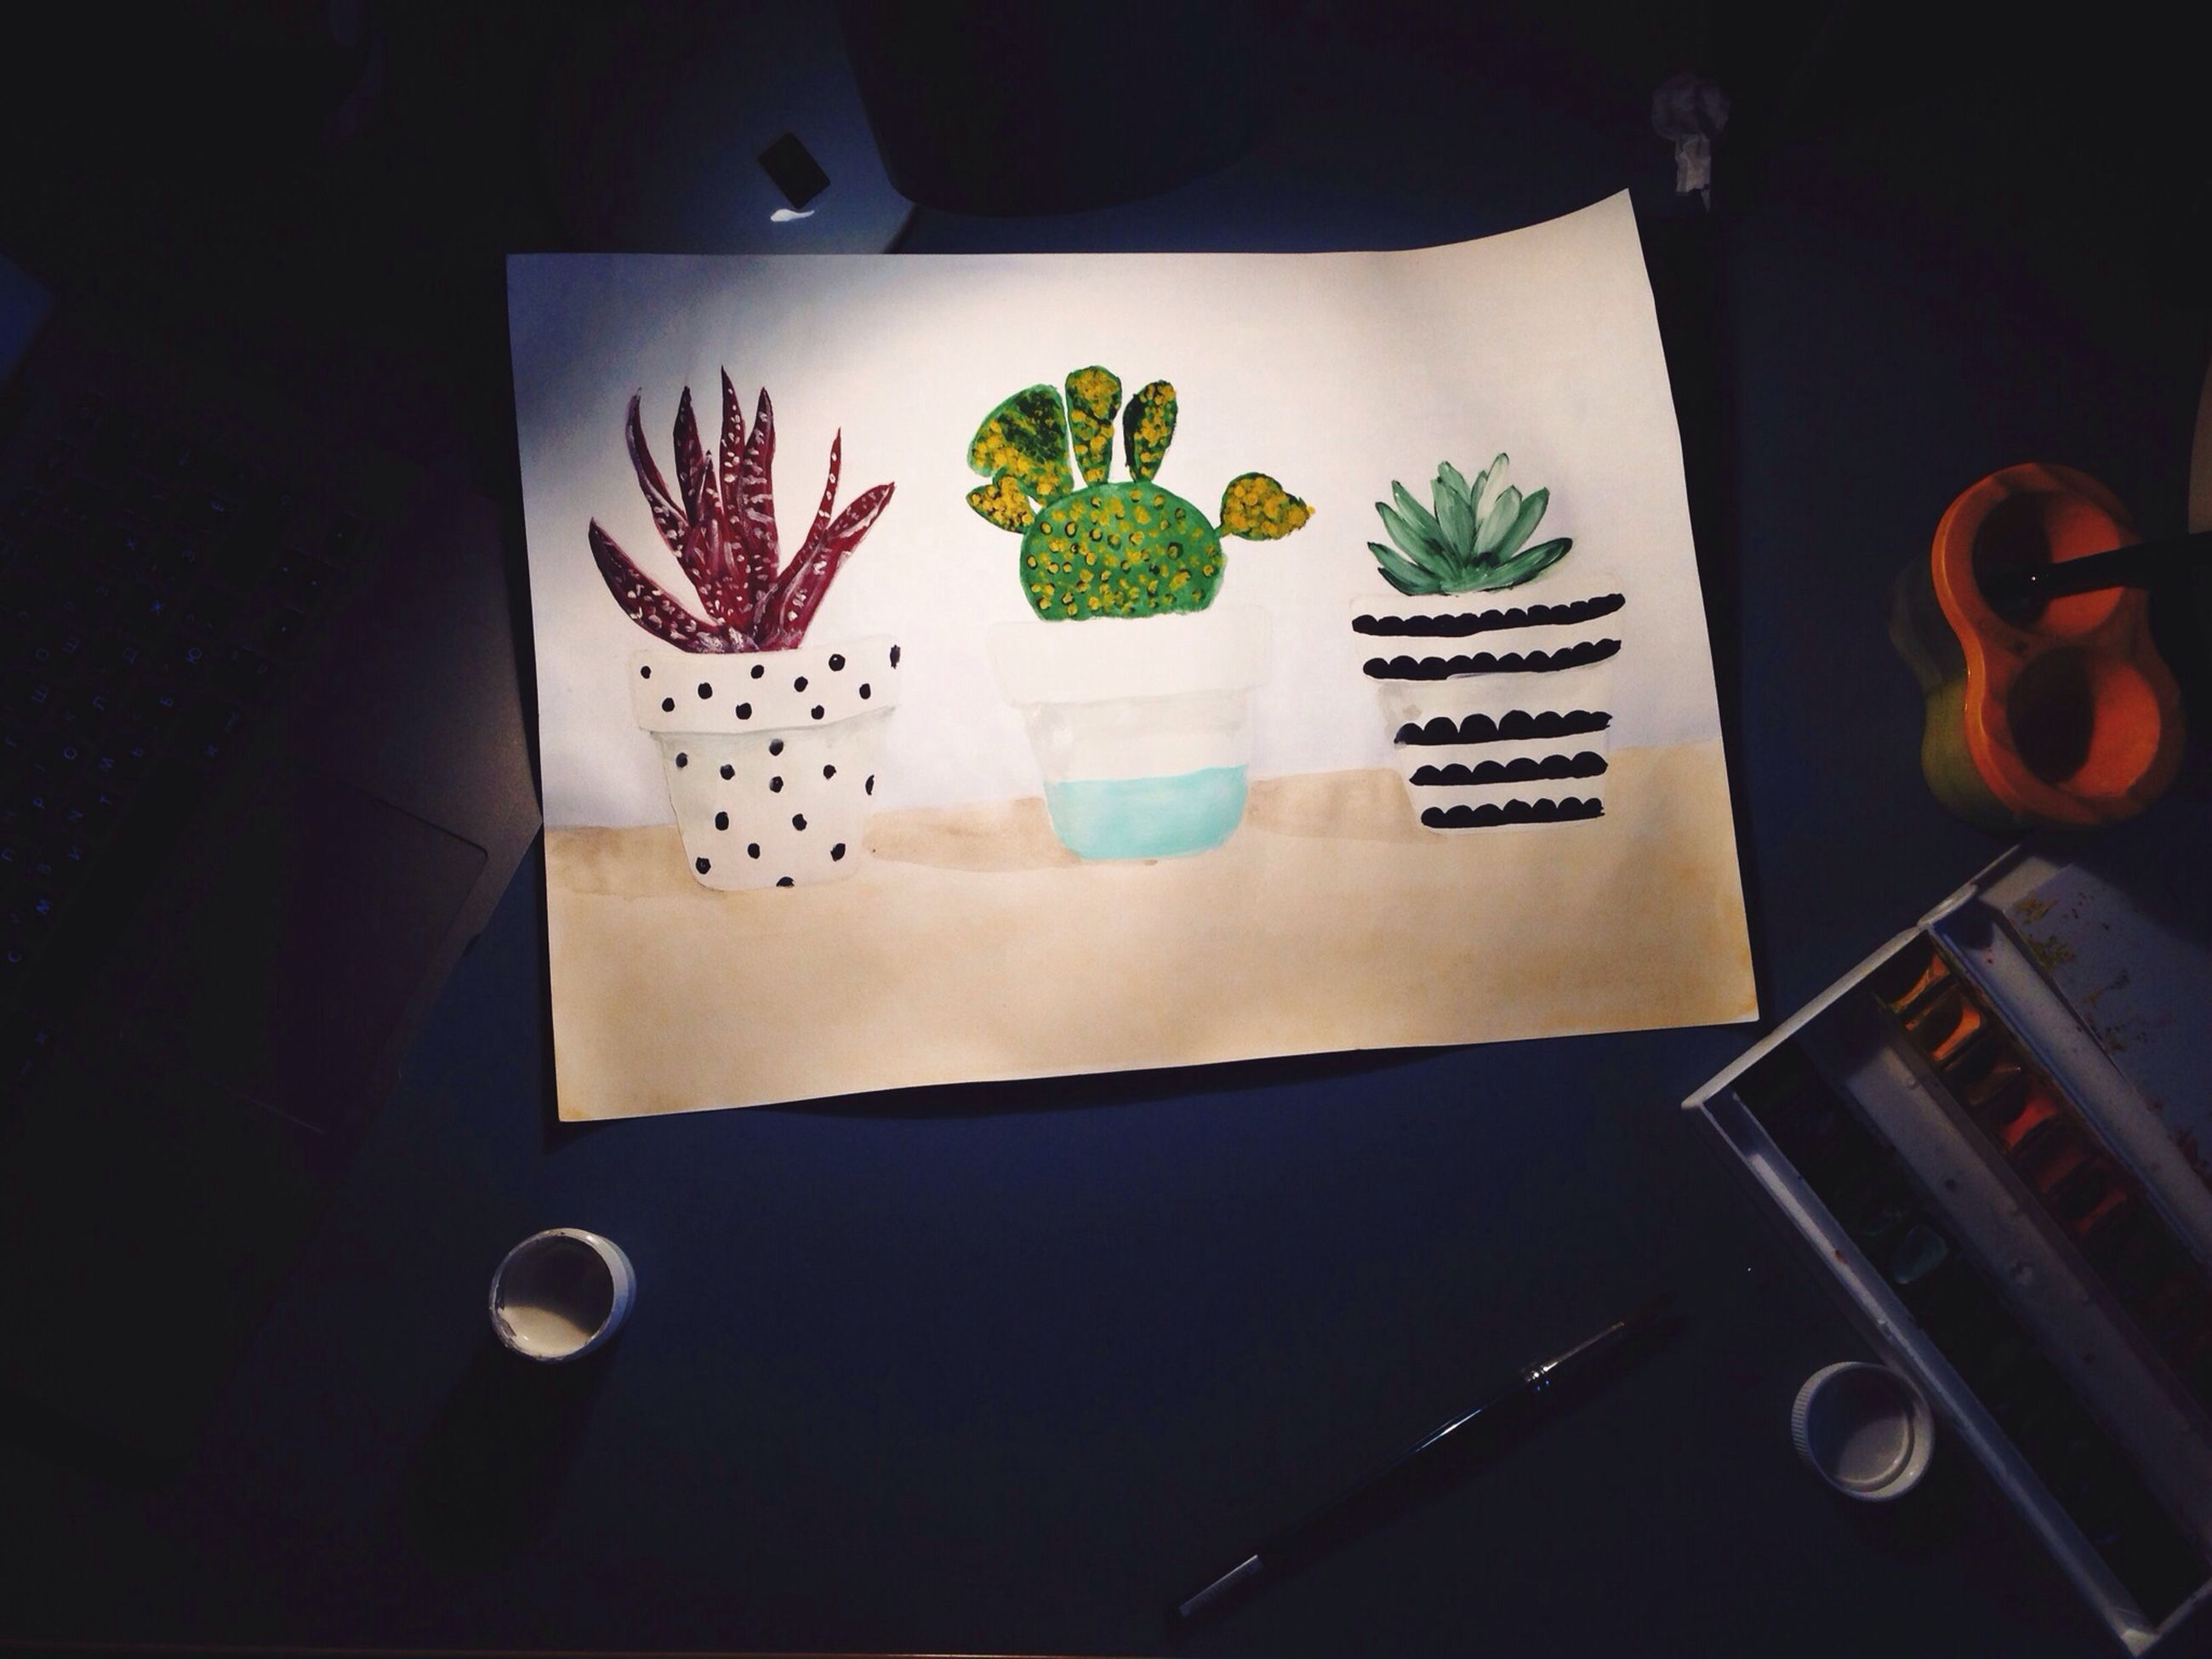 indoors, table, still life, high angle view, variation, paper, decoration, close-up, art, creativity, text, art and craft, no people, food and drink, plate, western script, communication, food, animal representation, home interior